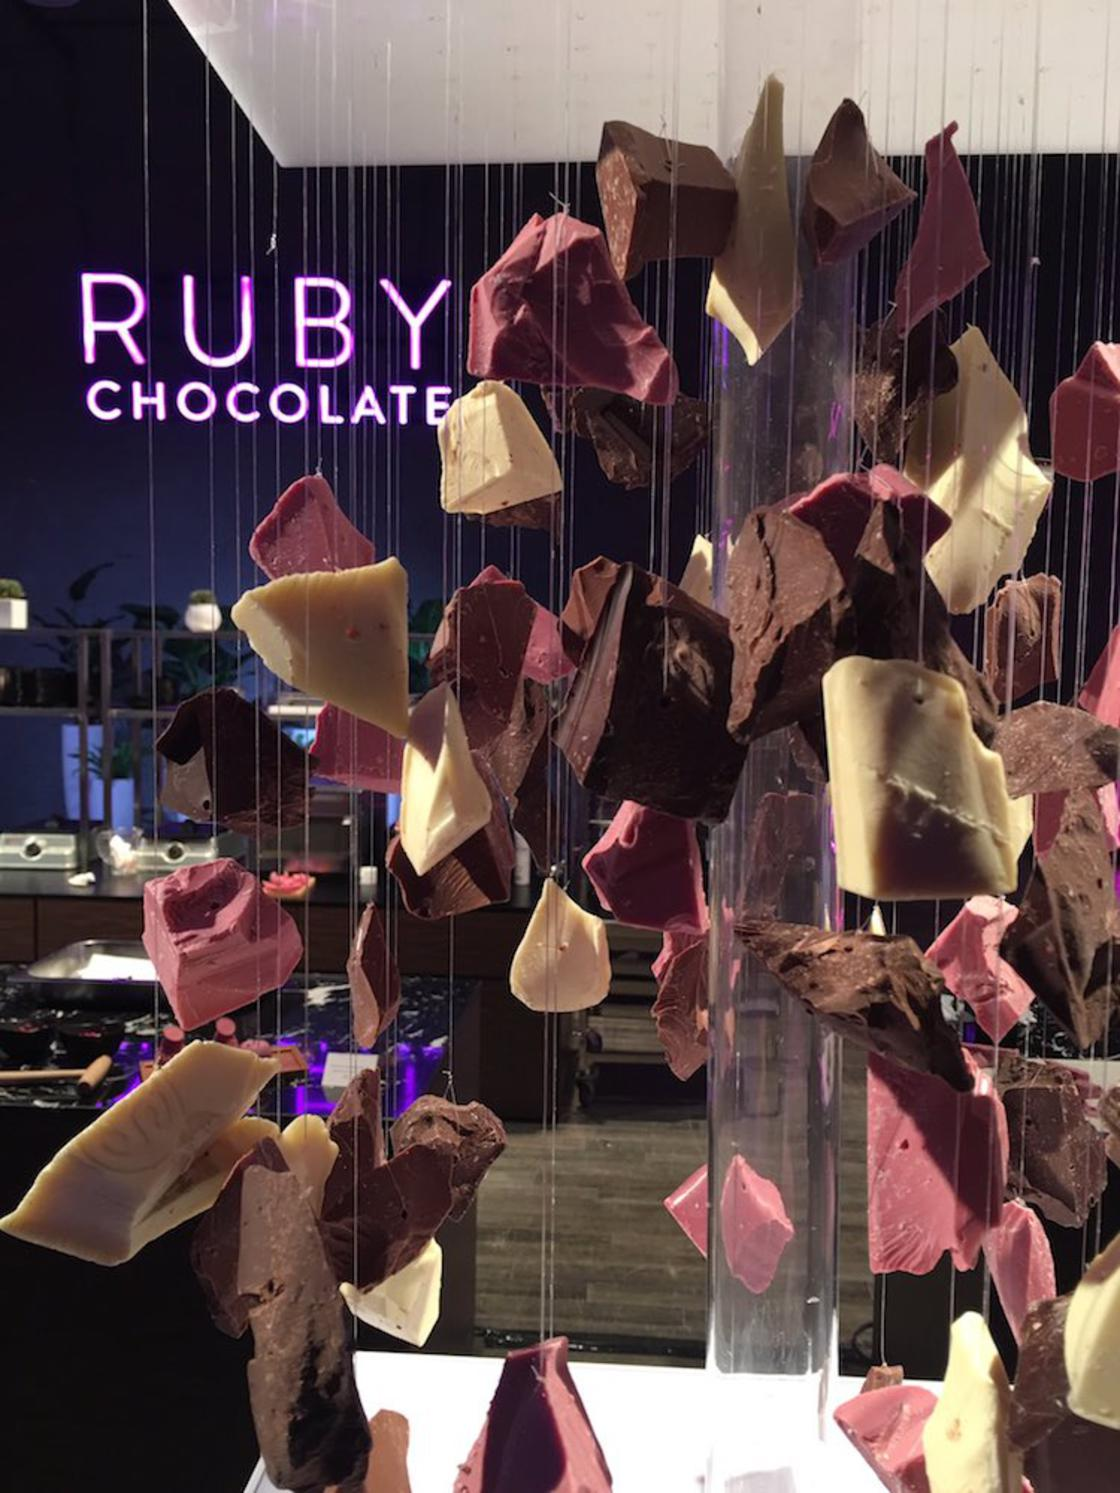 Ruby Chocolate – There is now a fourth type of chocolate!